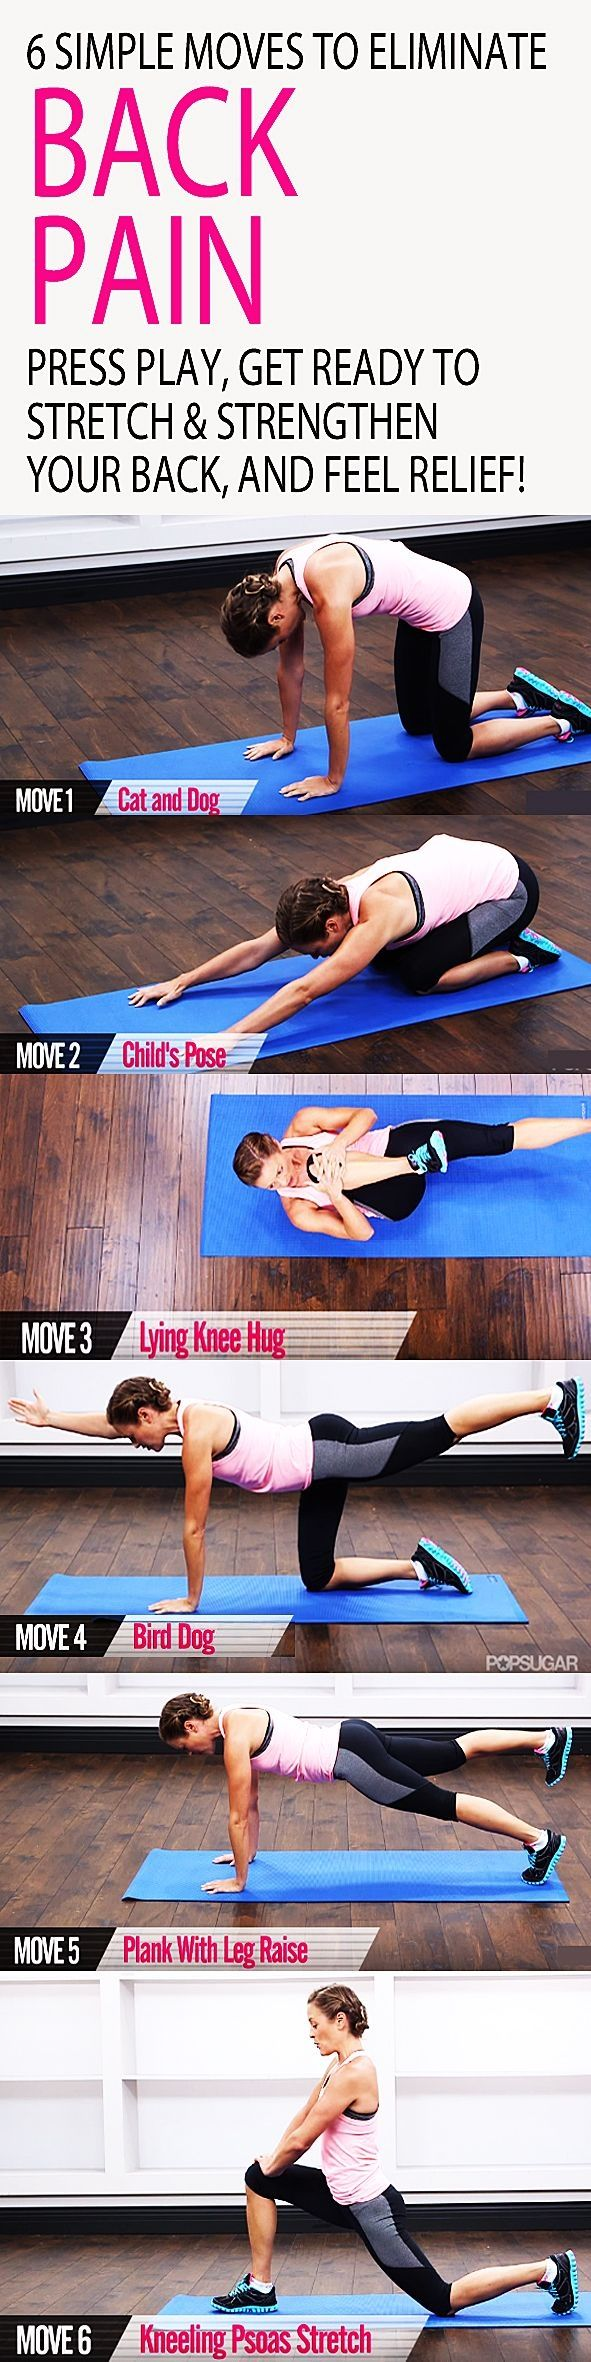 Weight loss diet with crossfit photo 9